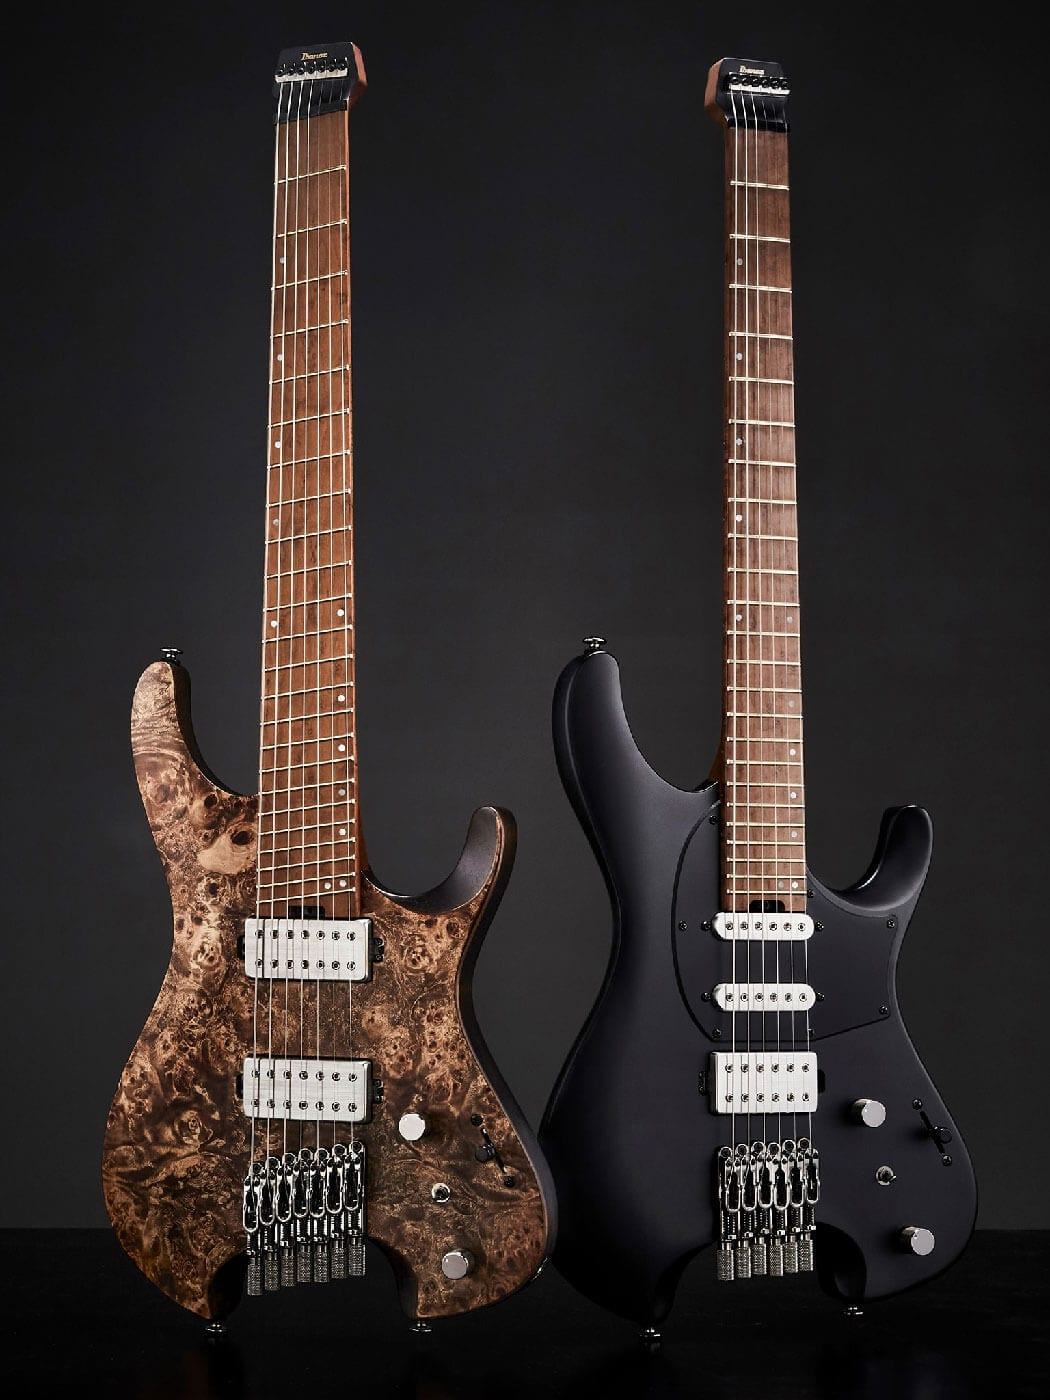 Ibanez QX527PB-ABS and Q54-BKF